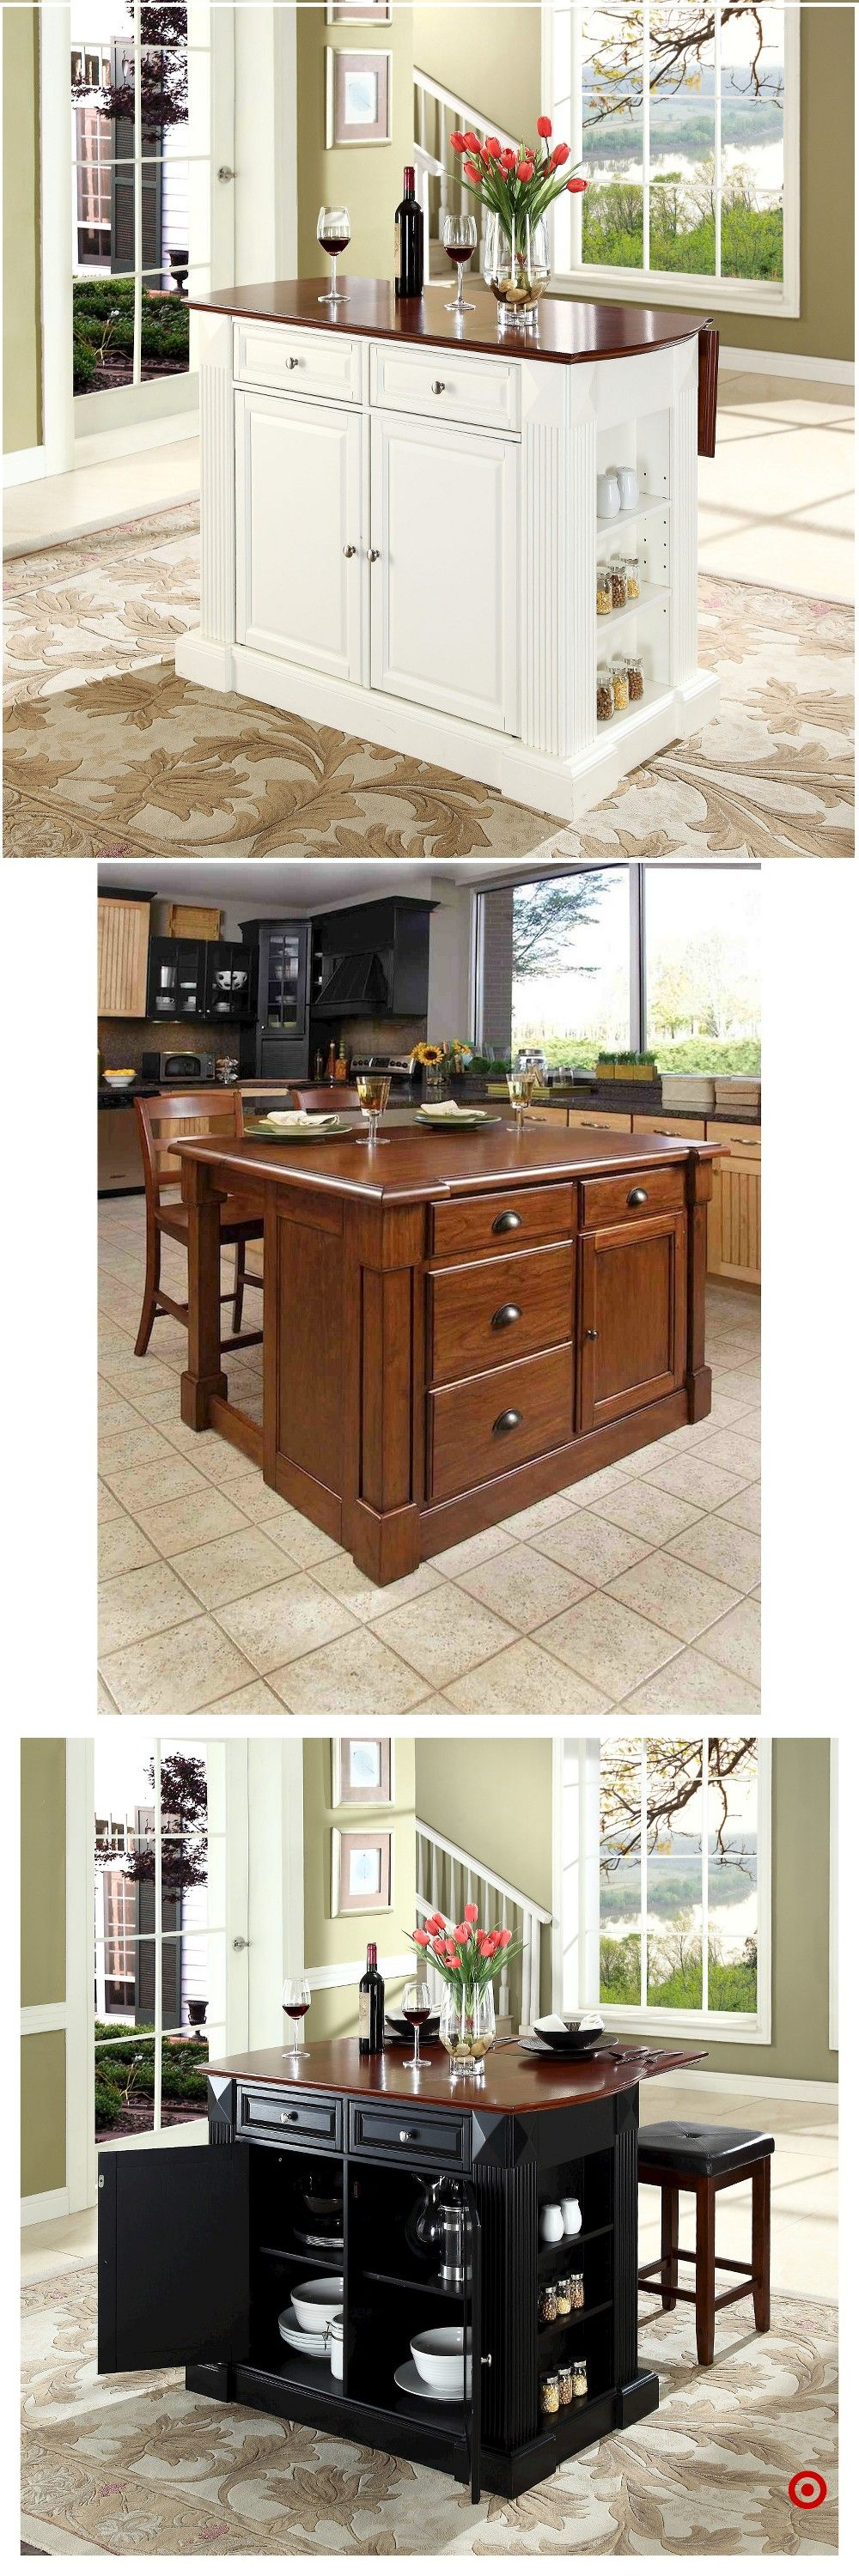 Shop Tar for kitchen island you will love at great low prices